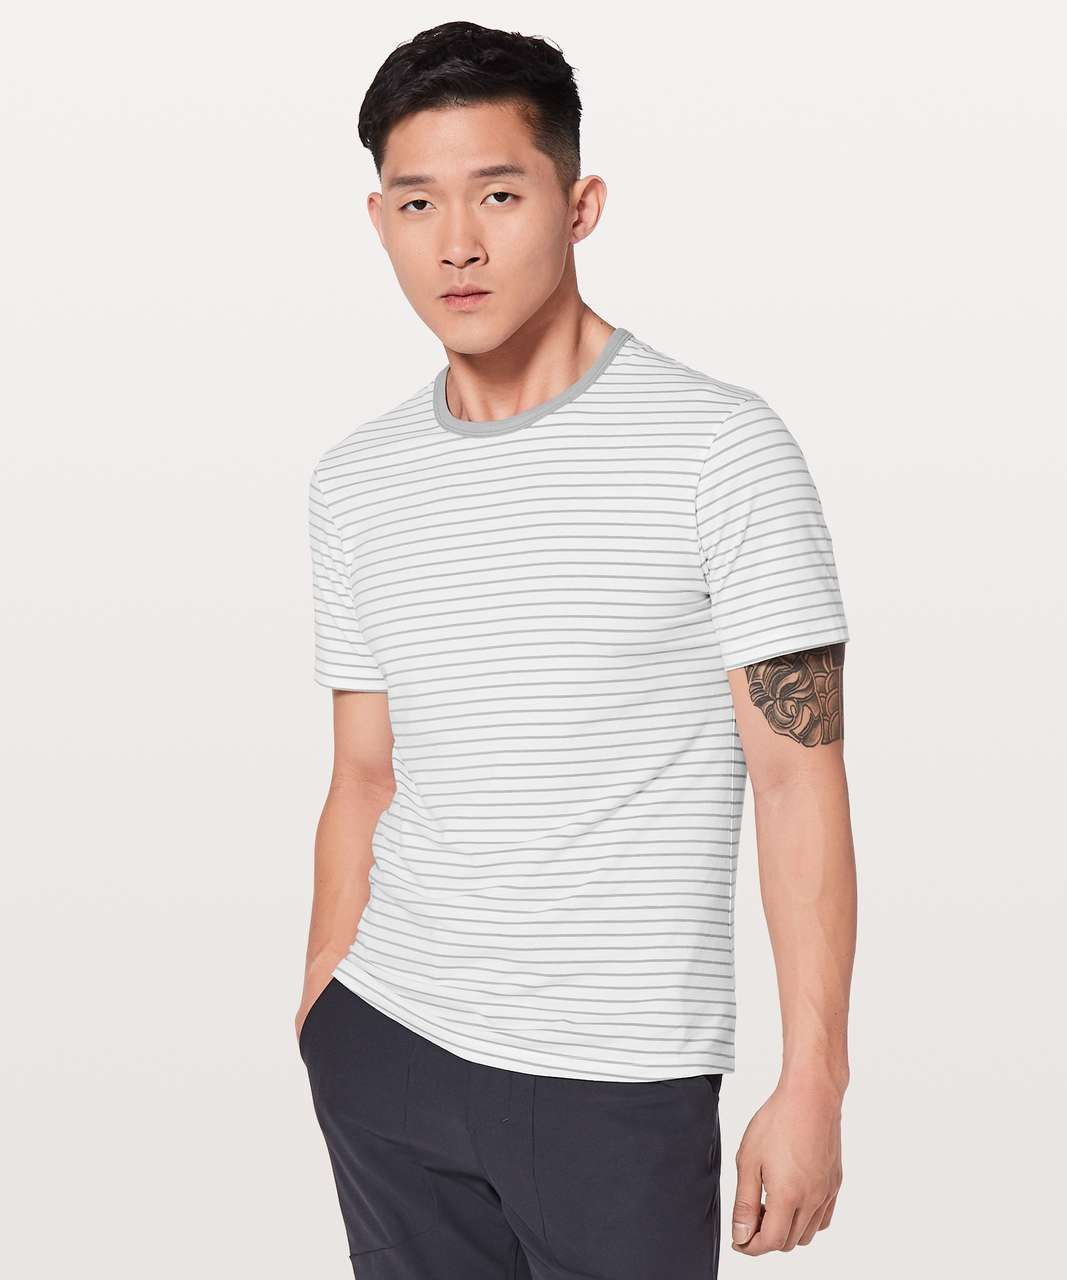 Lululemon 5 Year Basic Tee *Updated Fit - Raven Stripe White Light Cast